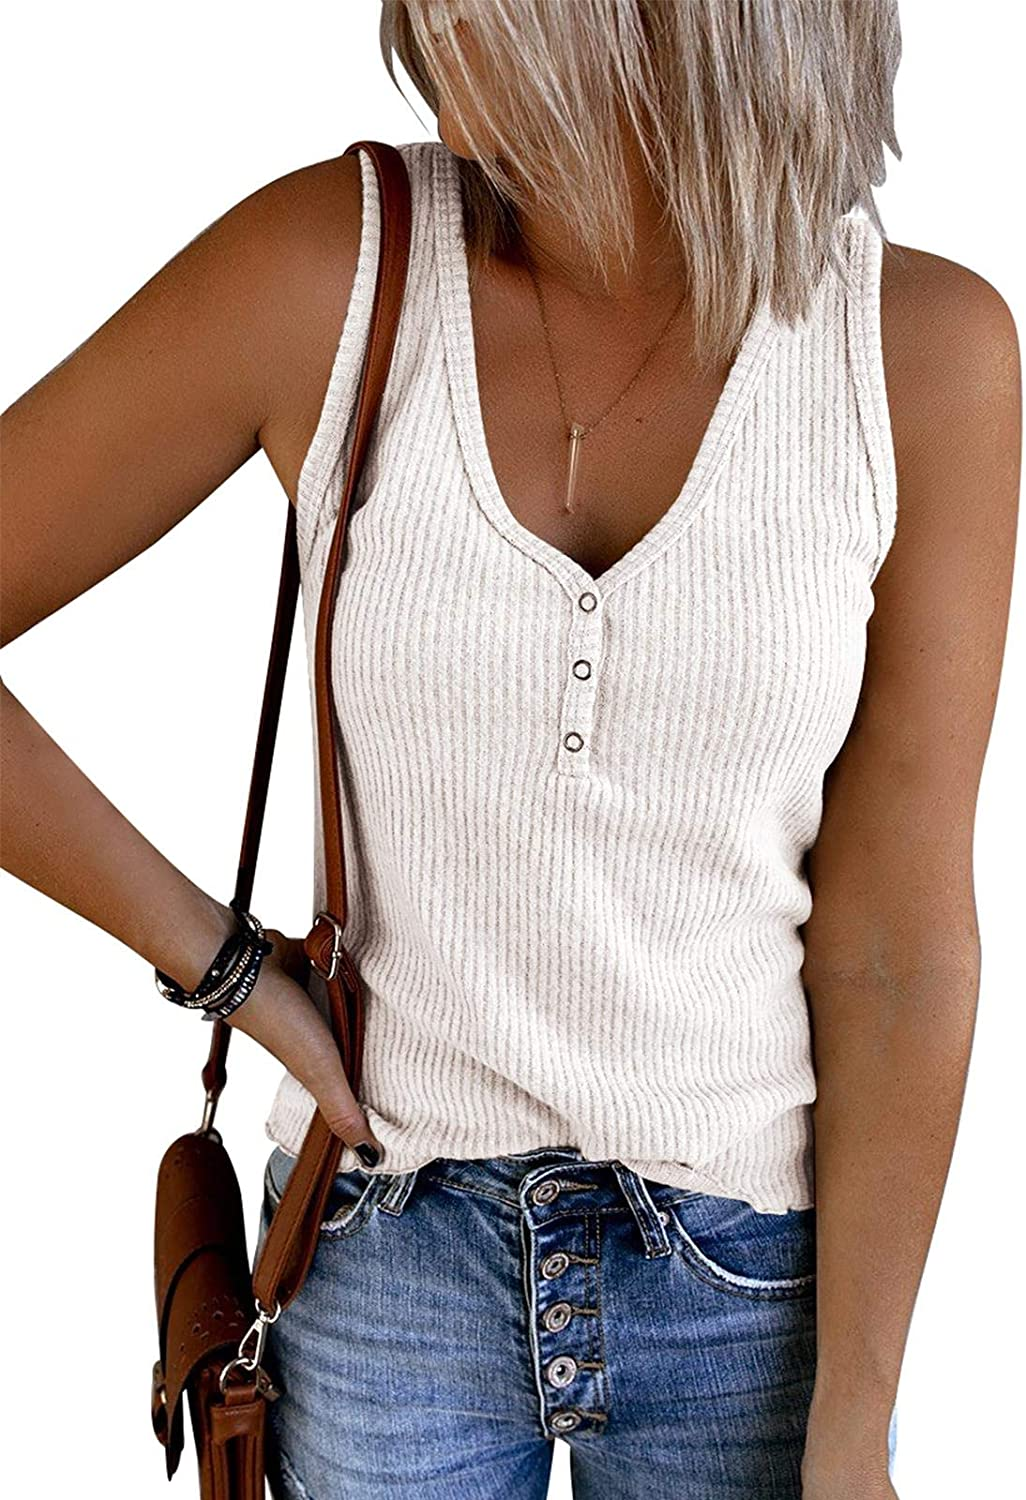 Ybenlow Womens V Neck Tank Tops Sleeveless Henley Shirts Ribbed Knit Button Up Casual Vest Blouse Tees